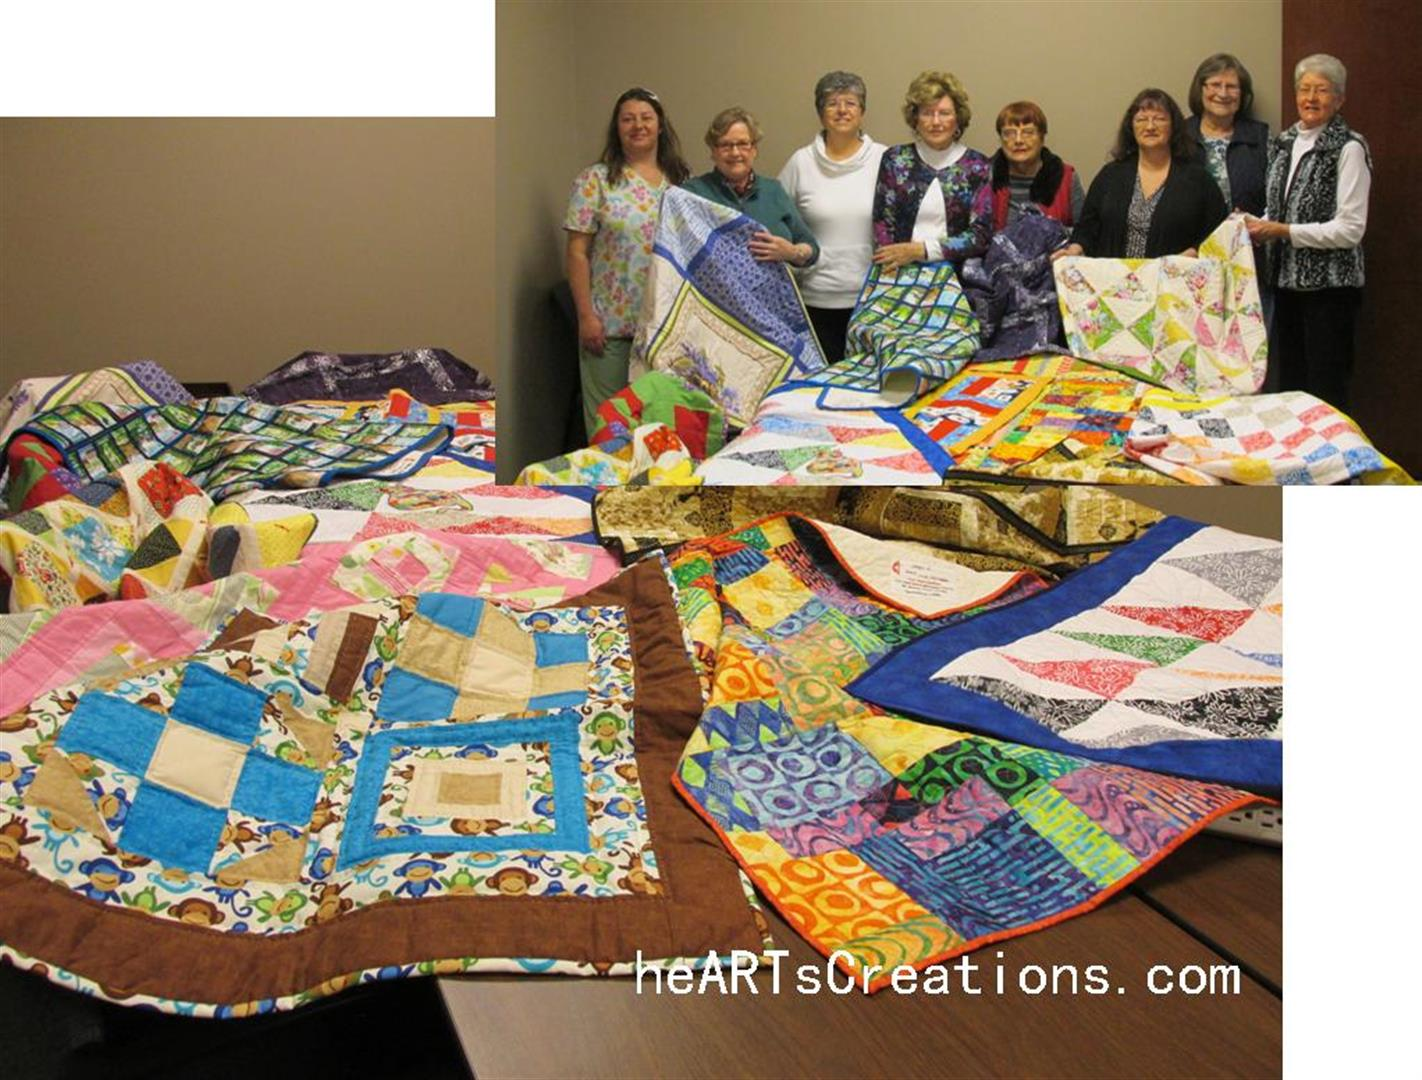 hospice-quilts-large